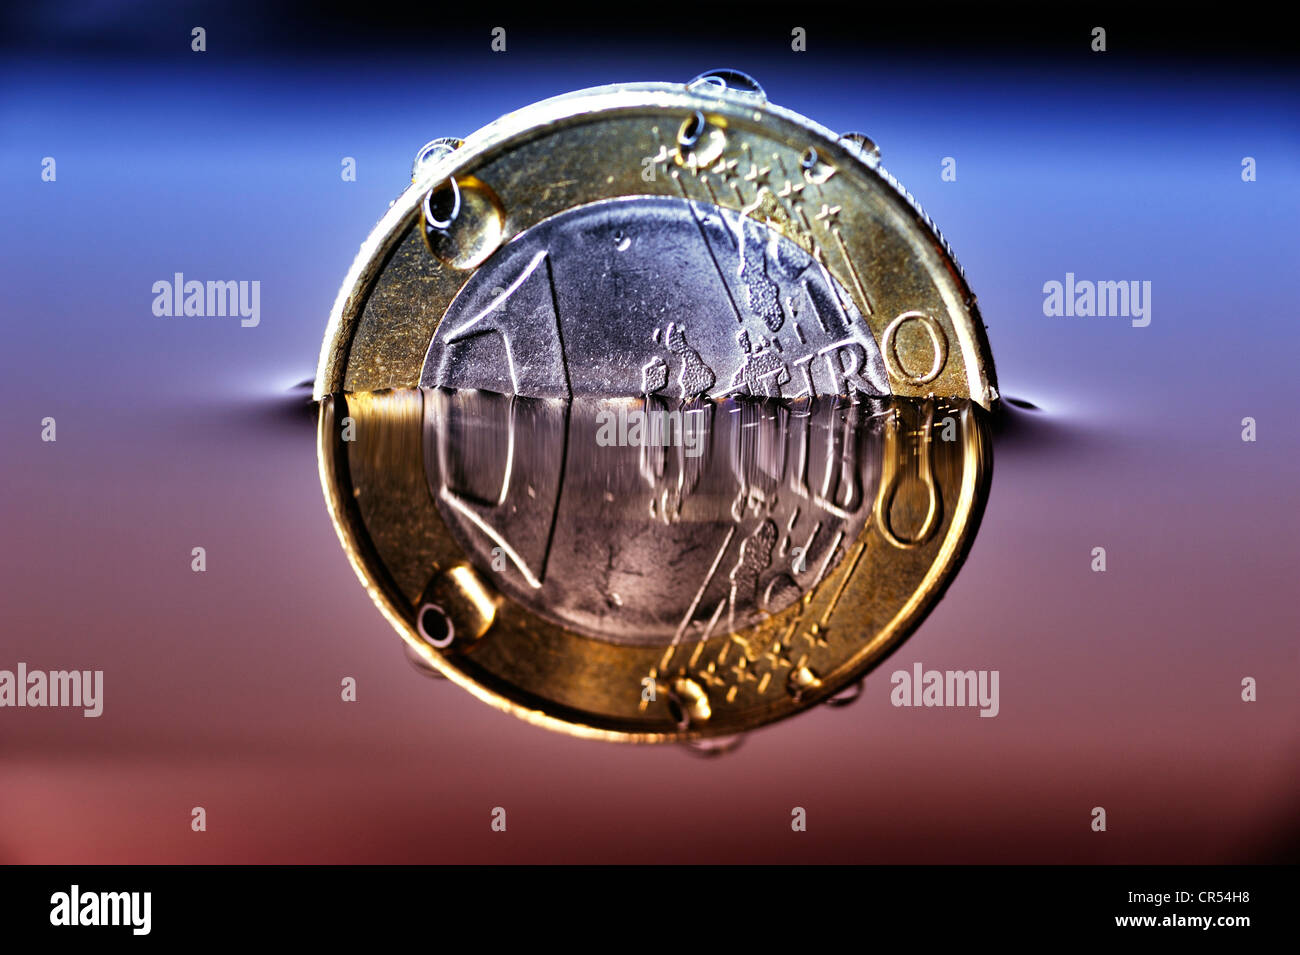 A euro coin sinking in water, symbolic image for the debt crisis in europe - Stock Image